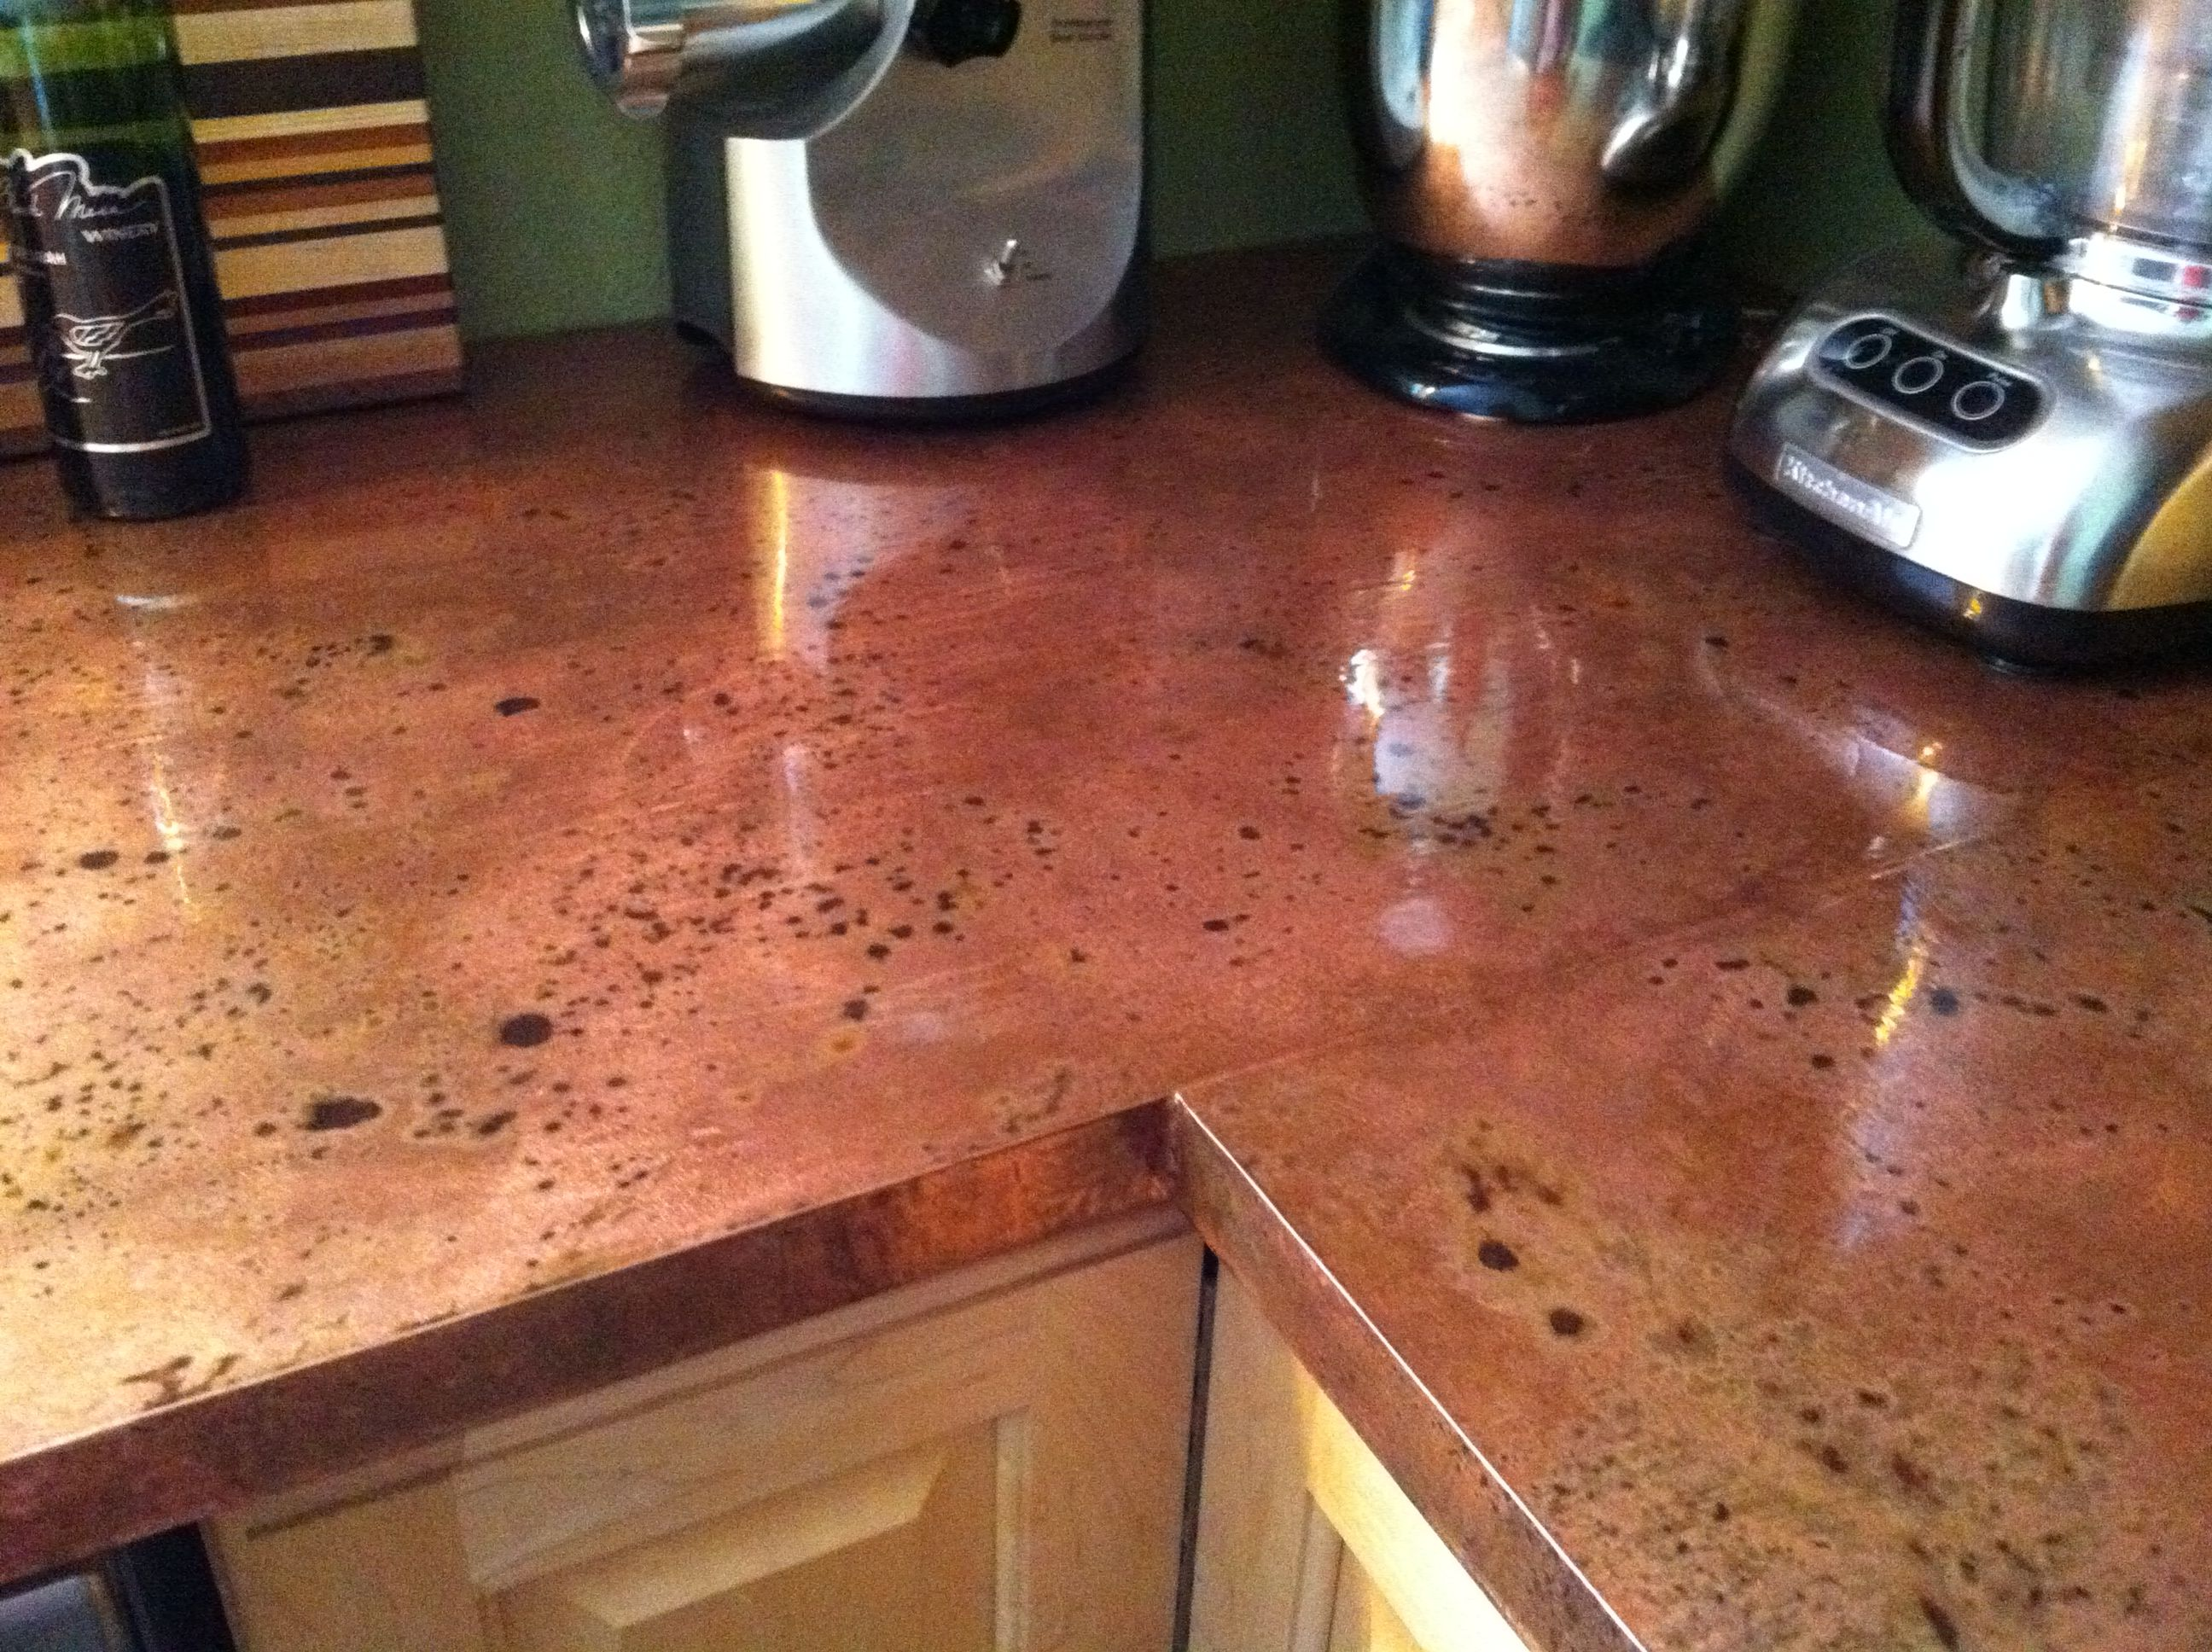 Copper Laminate Countertops Copper Countertops This Is Simply Copper Sheeting Contact